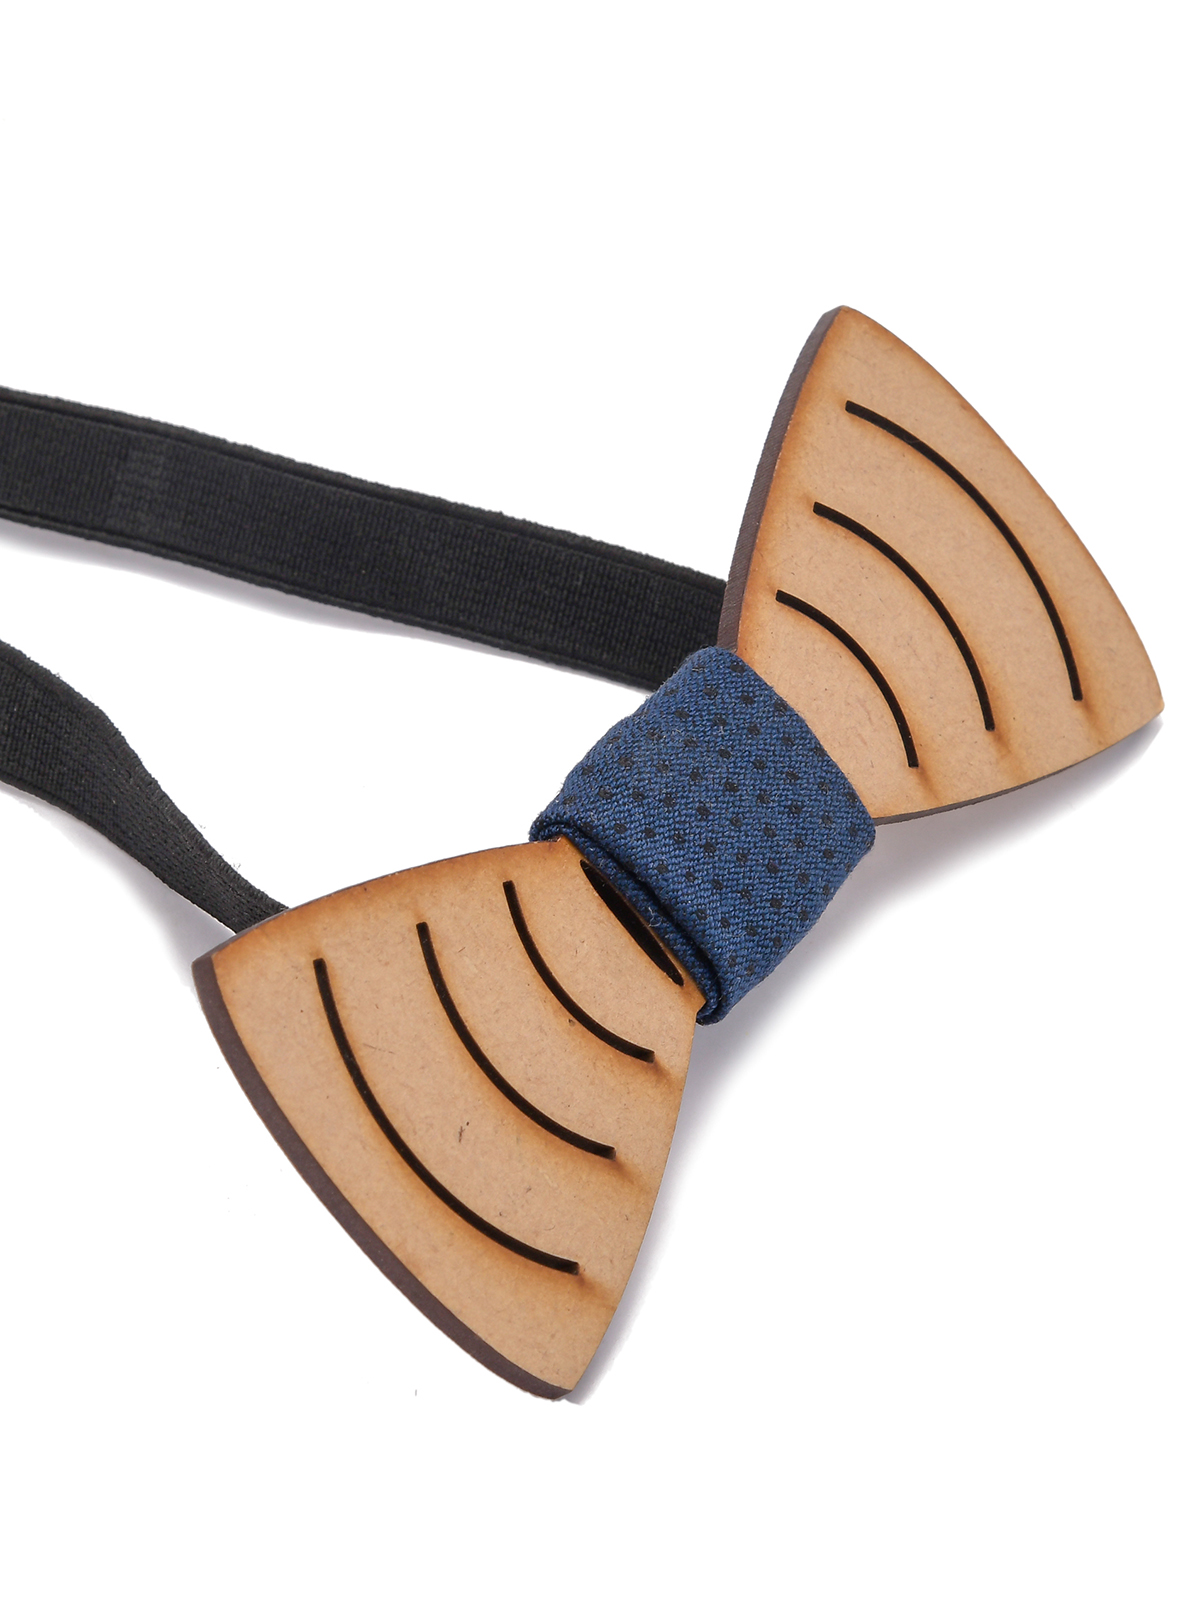 Bow Tie Wooden With Lines Engraved